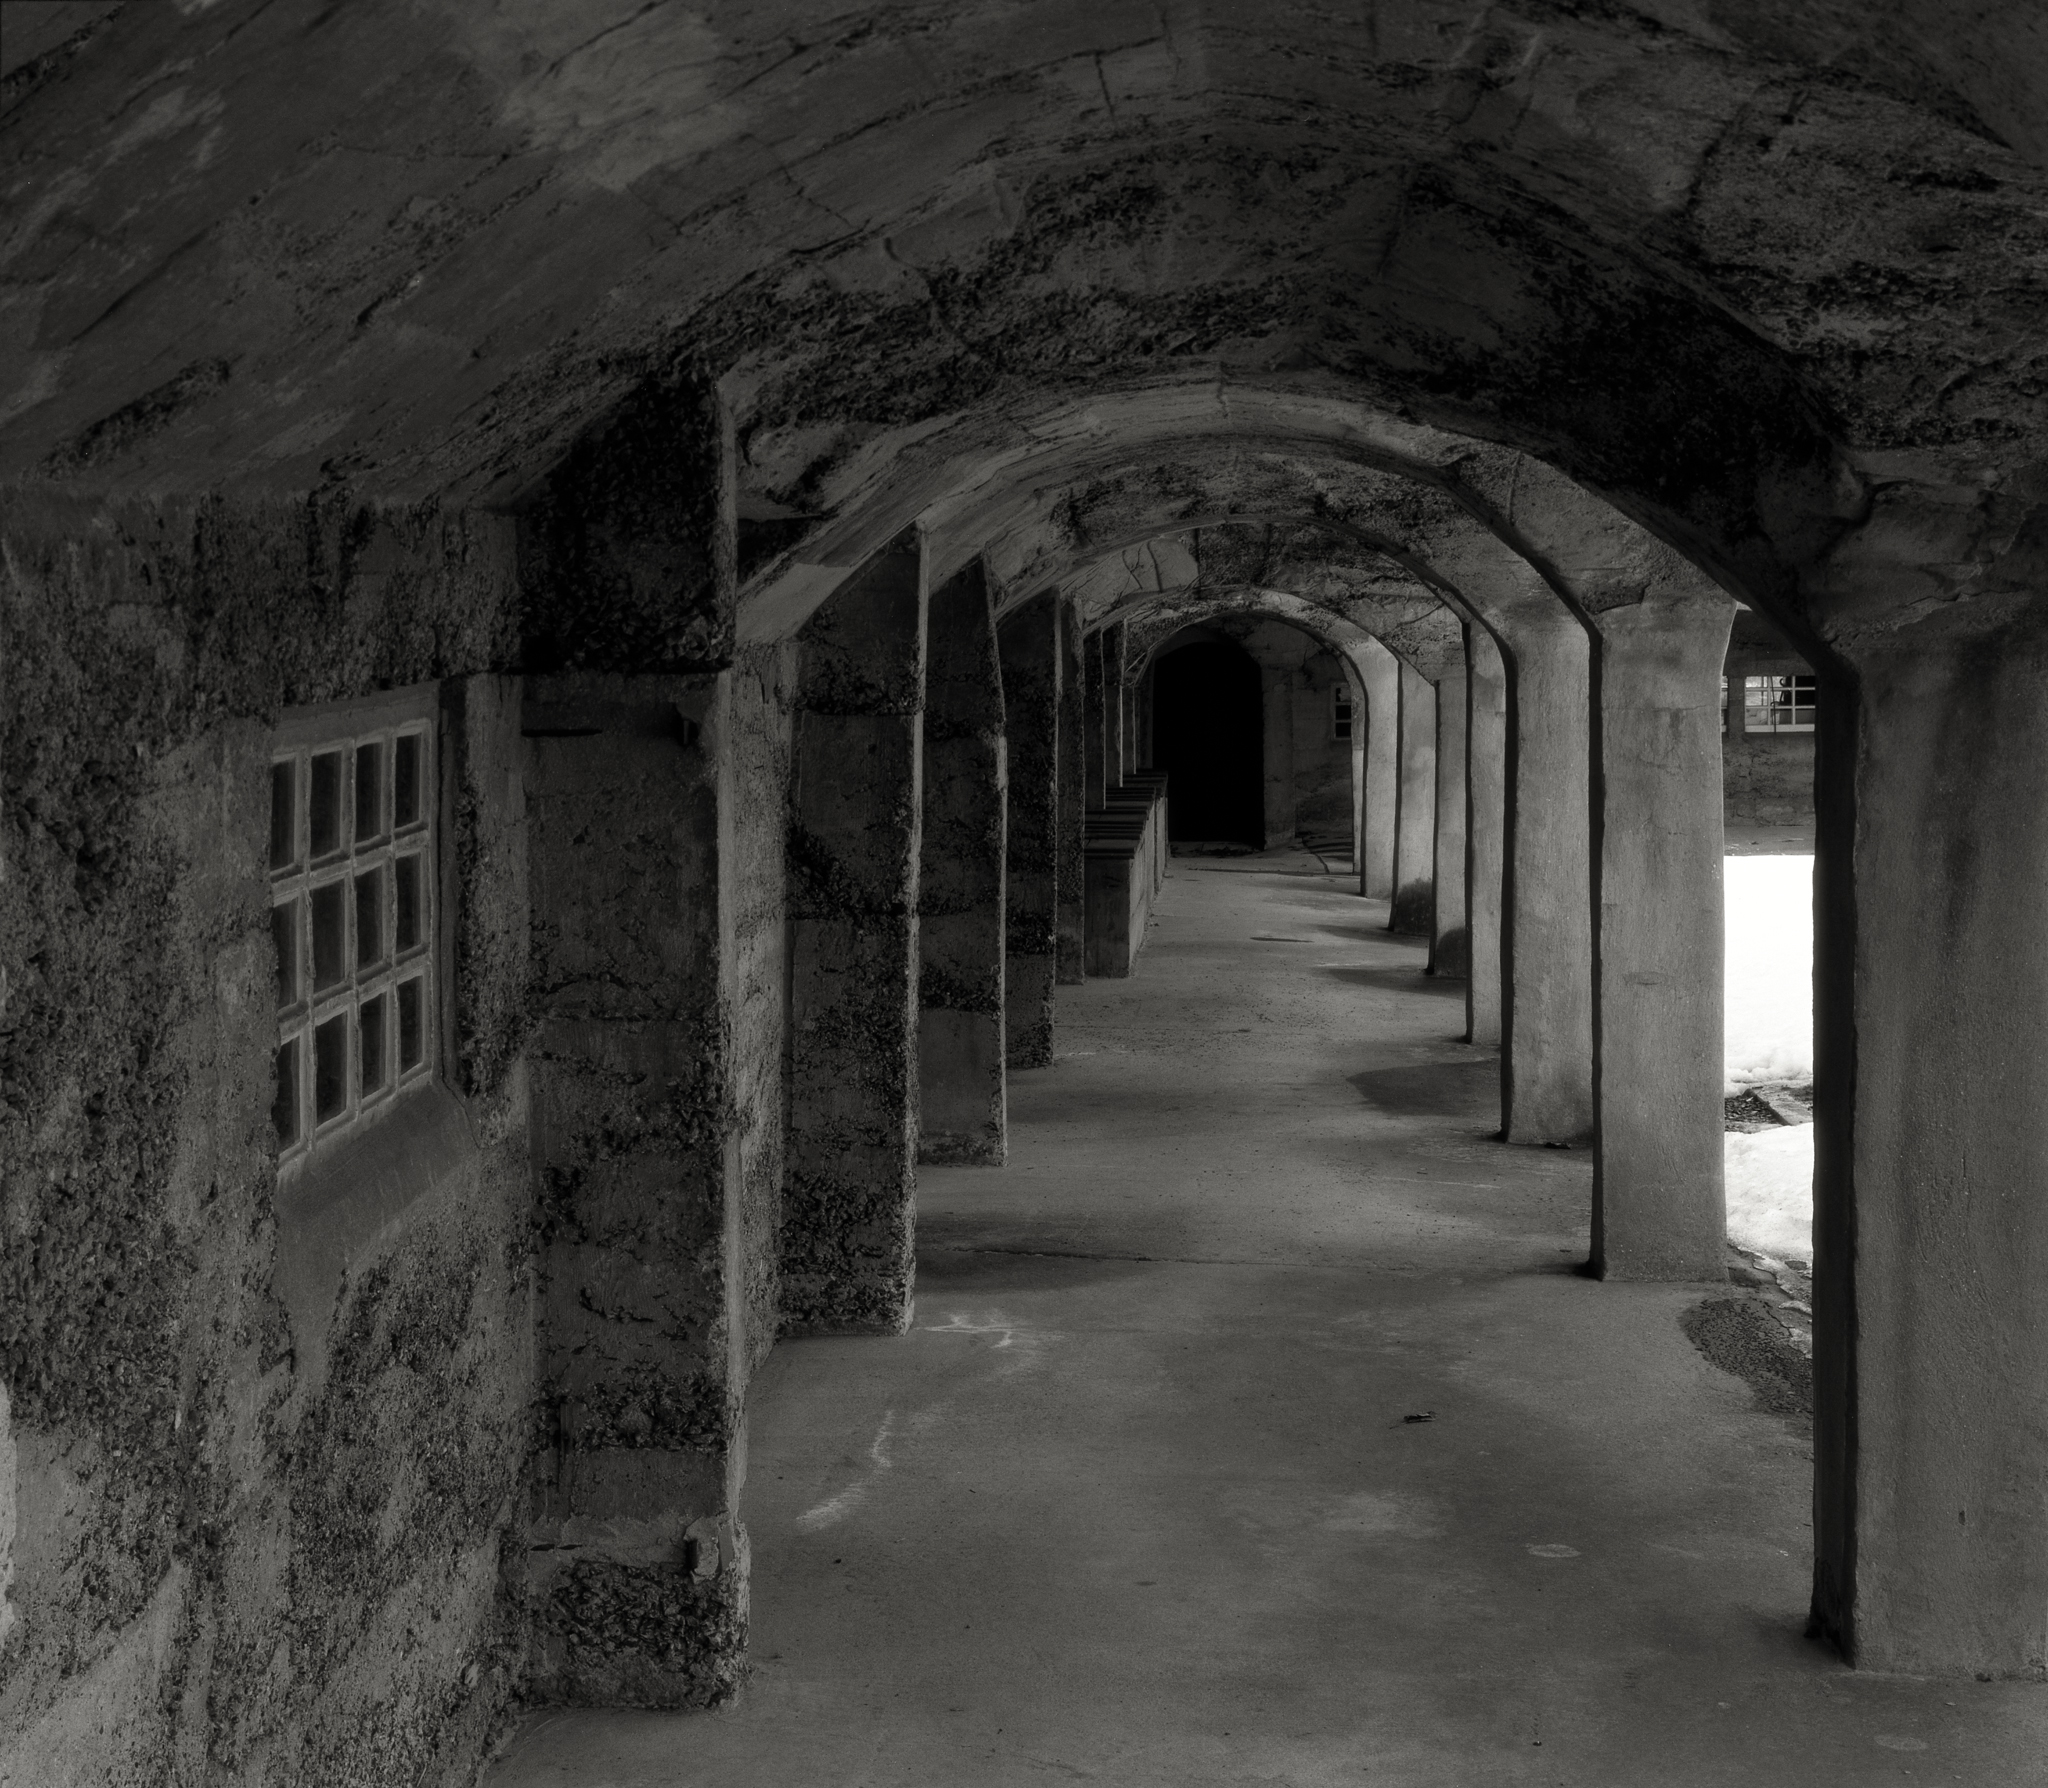 4x5_for_365_porject_076_Moravian_Pottery_Works_arches.jpg